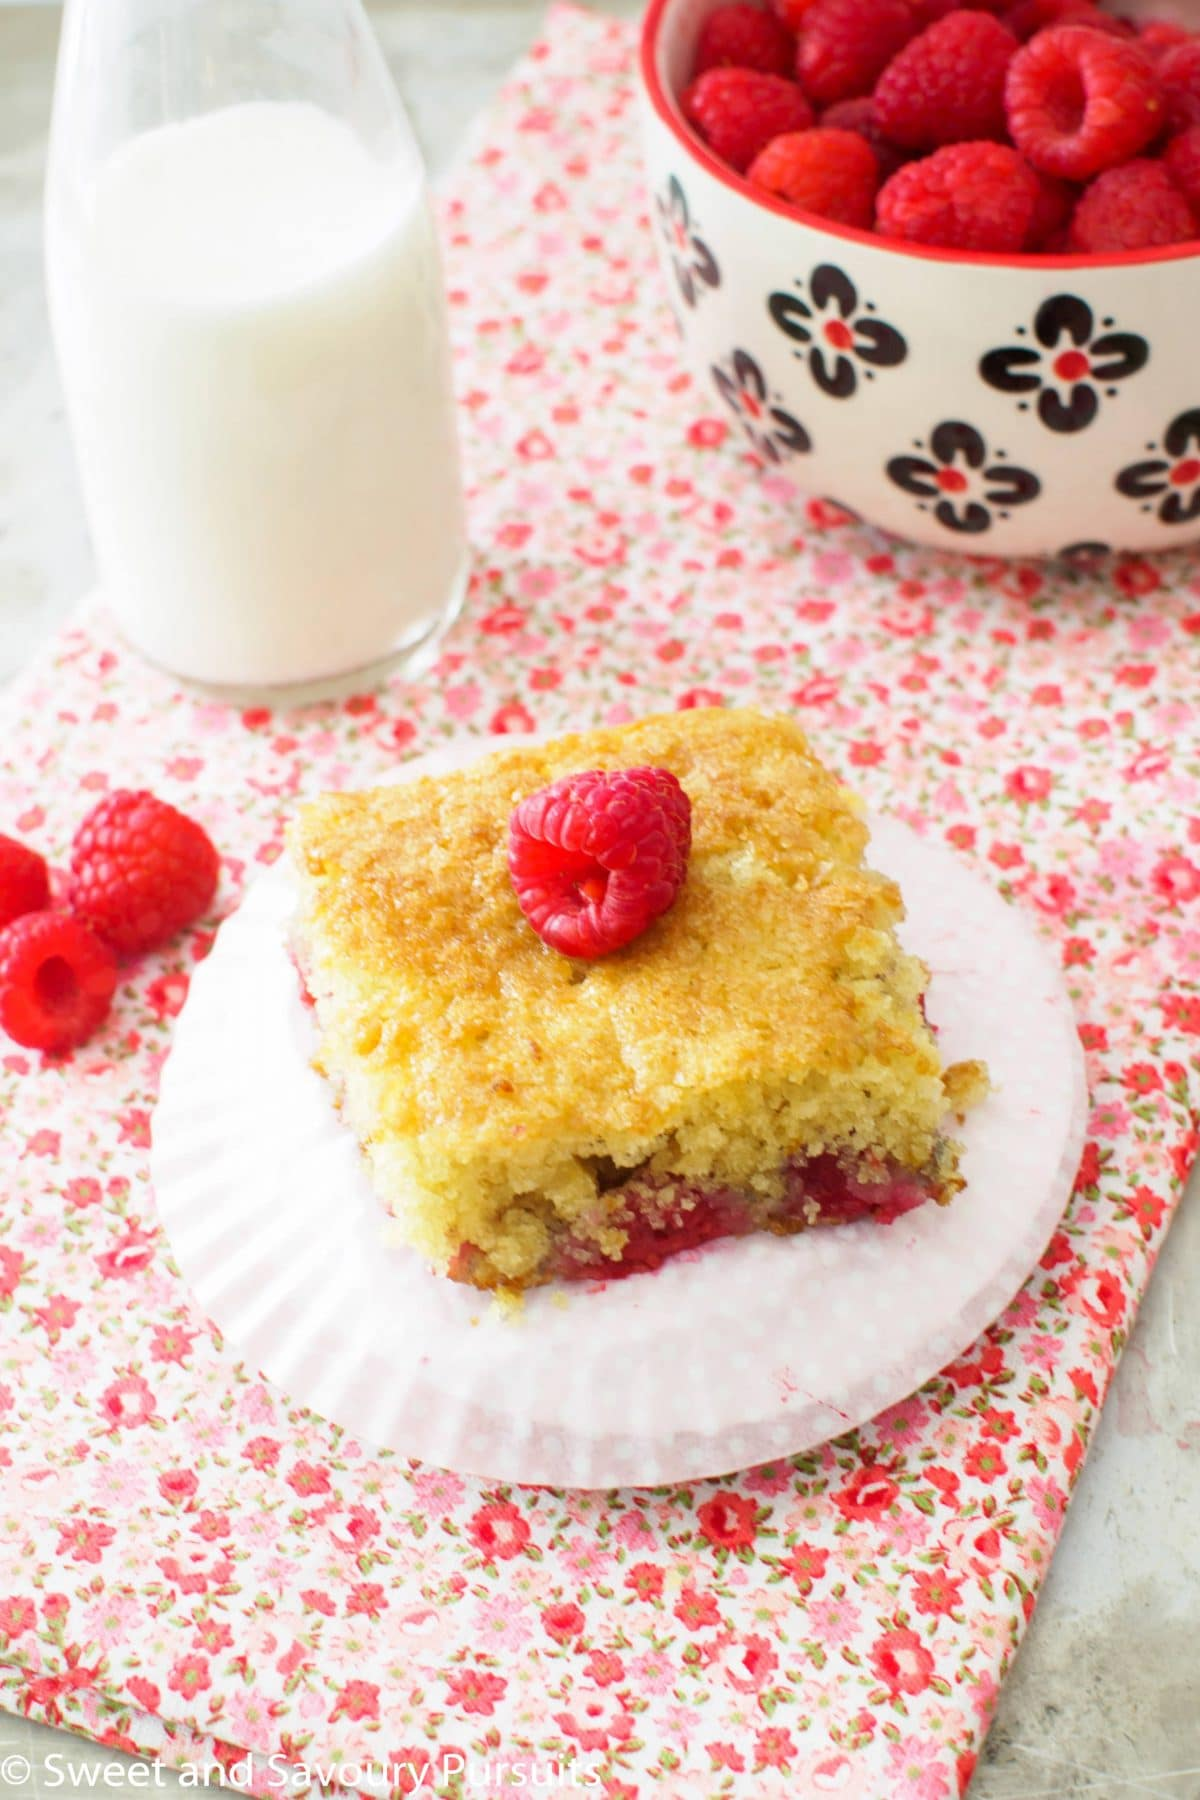 Raspberry Buttermilk Cake served with bowl of fresh raspberries.